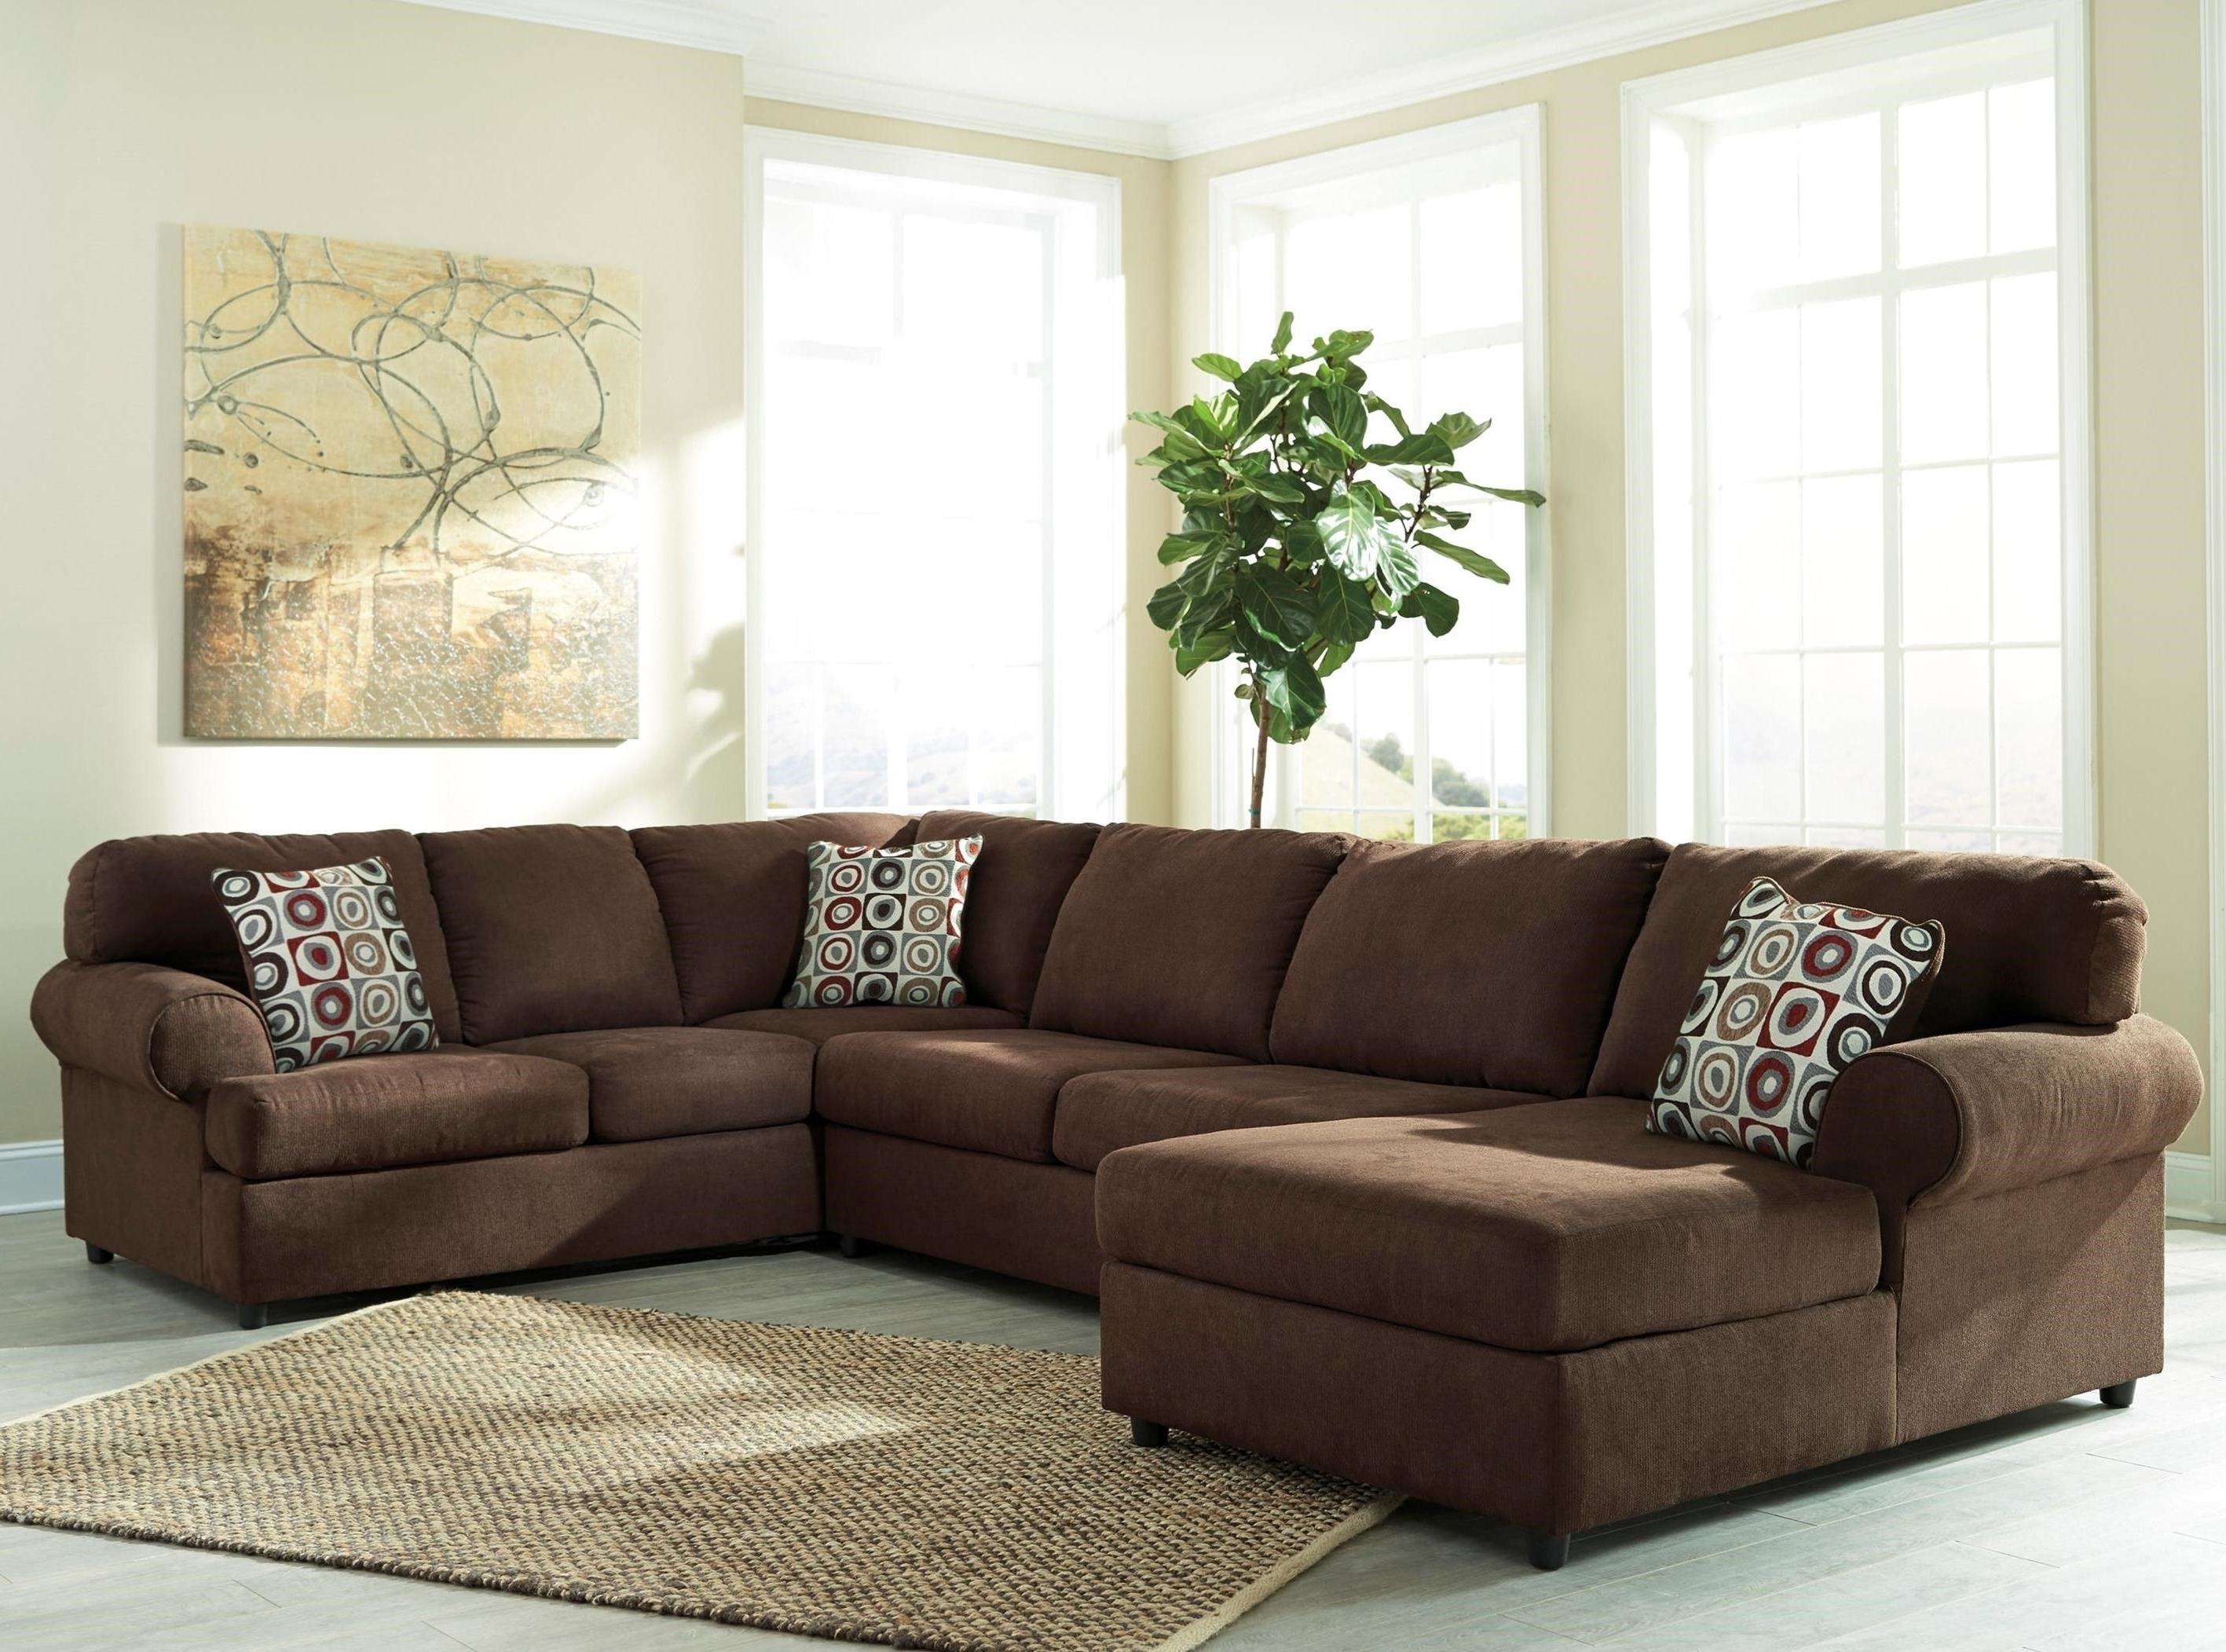 Widely Used Royal Furniture Sectional Sofas Pertaining To Jayceon 3 Piece Sectional With Left Chaisesignature Design (View 15 of 15)